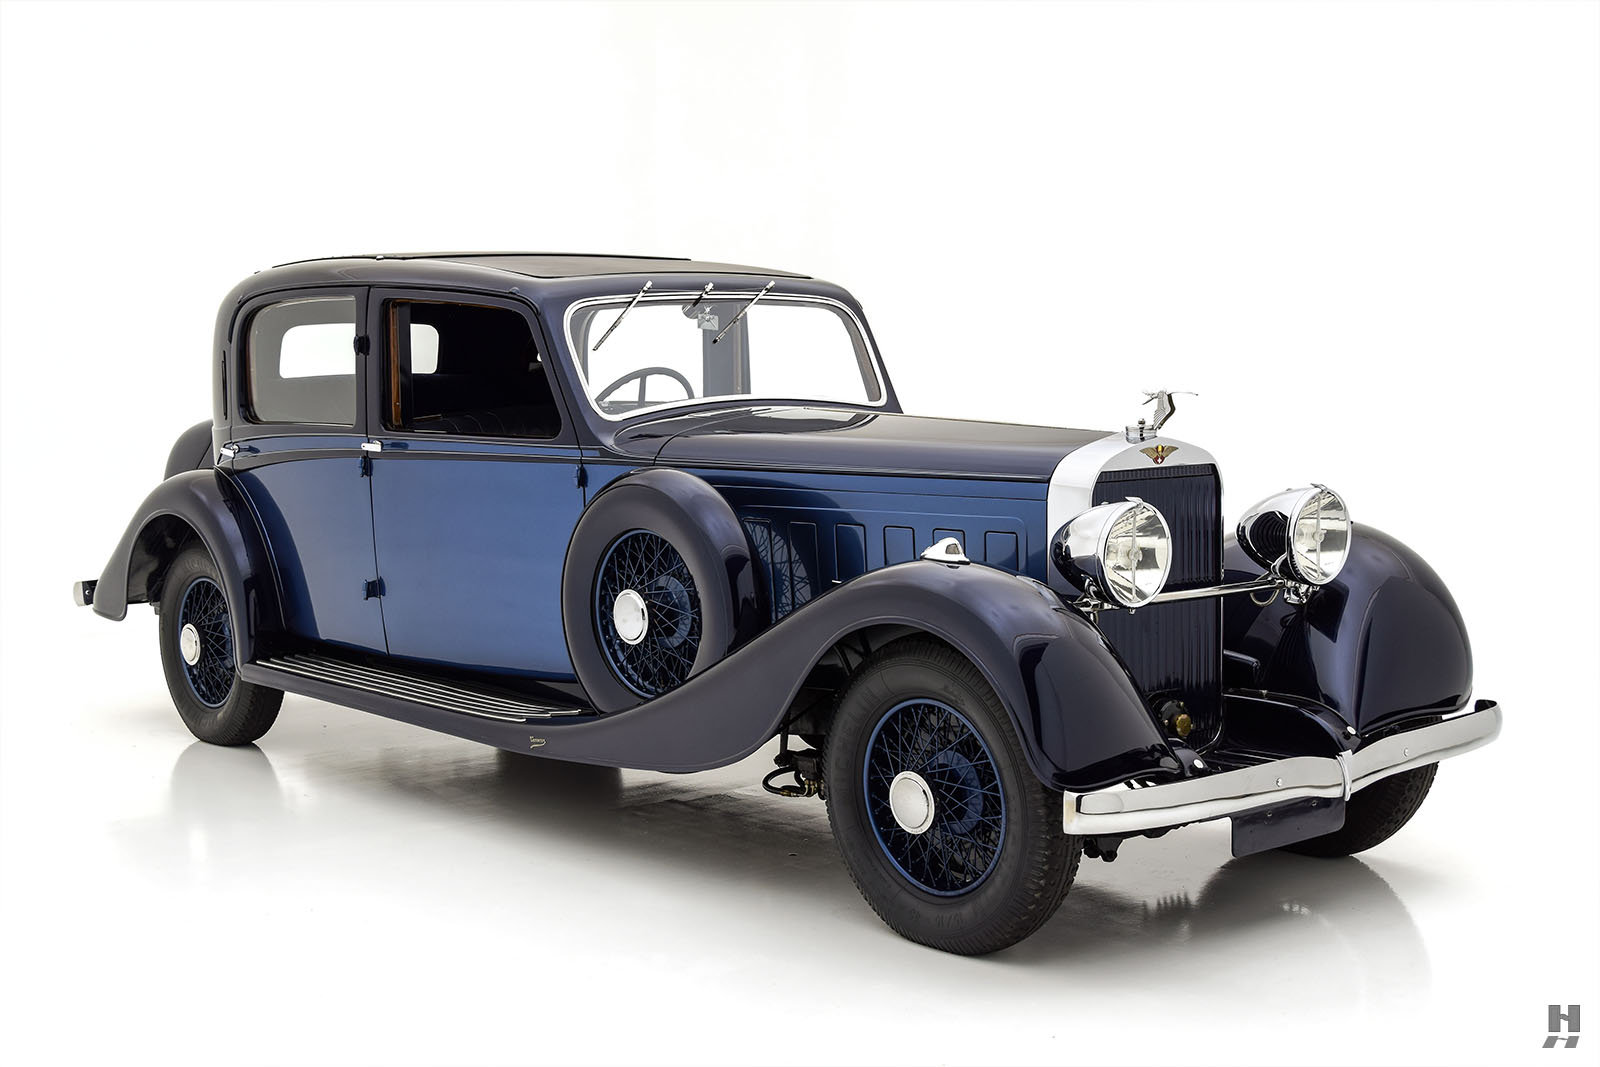 1936 HISPANO-SUIZA K6 BERLINE For Sale (picture 2 of 6)